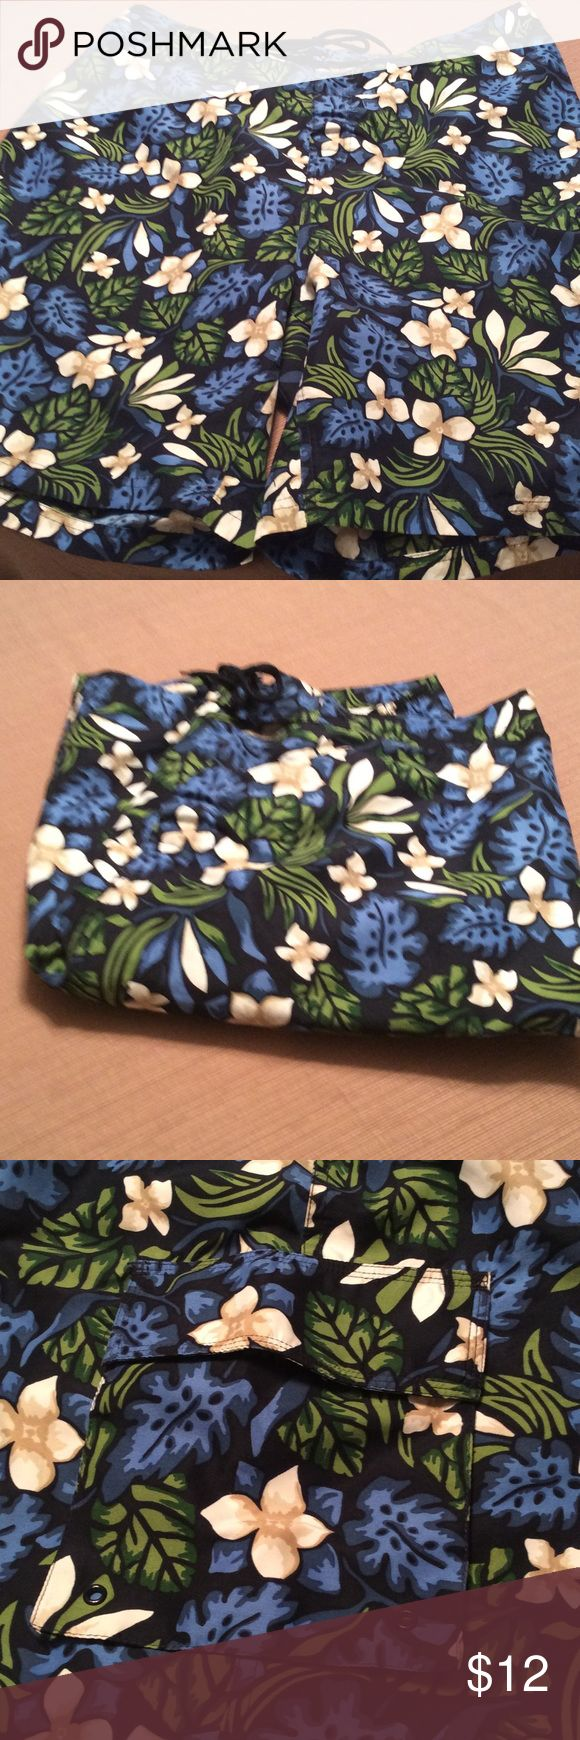 Men's bathing suit with pocket Pocket on leg, elastic on back of waist, and tie in front Covington Swim